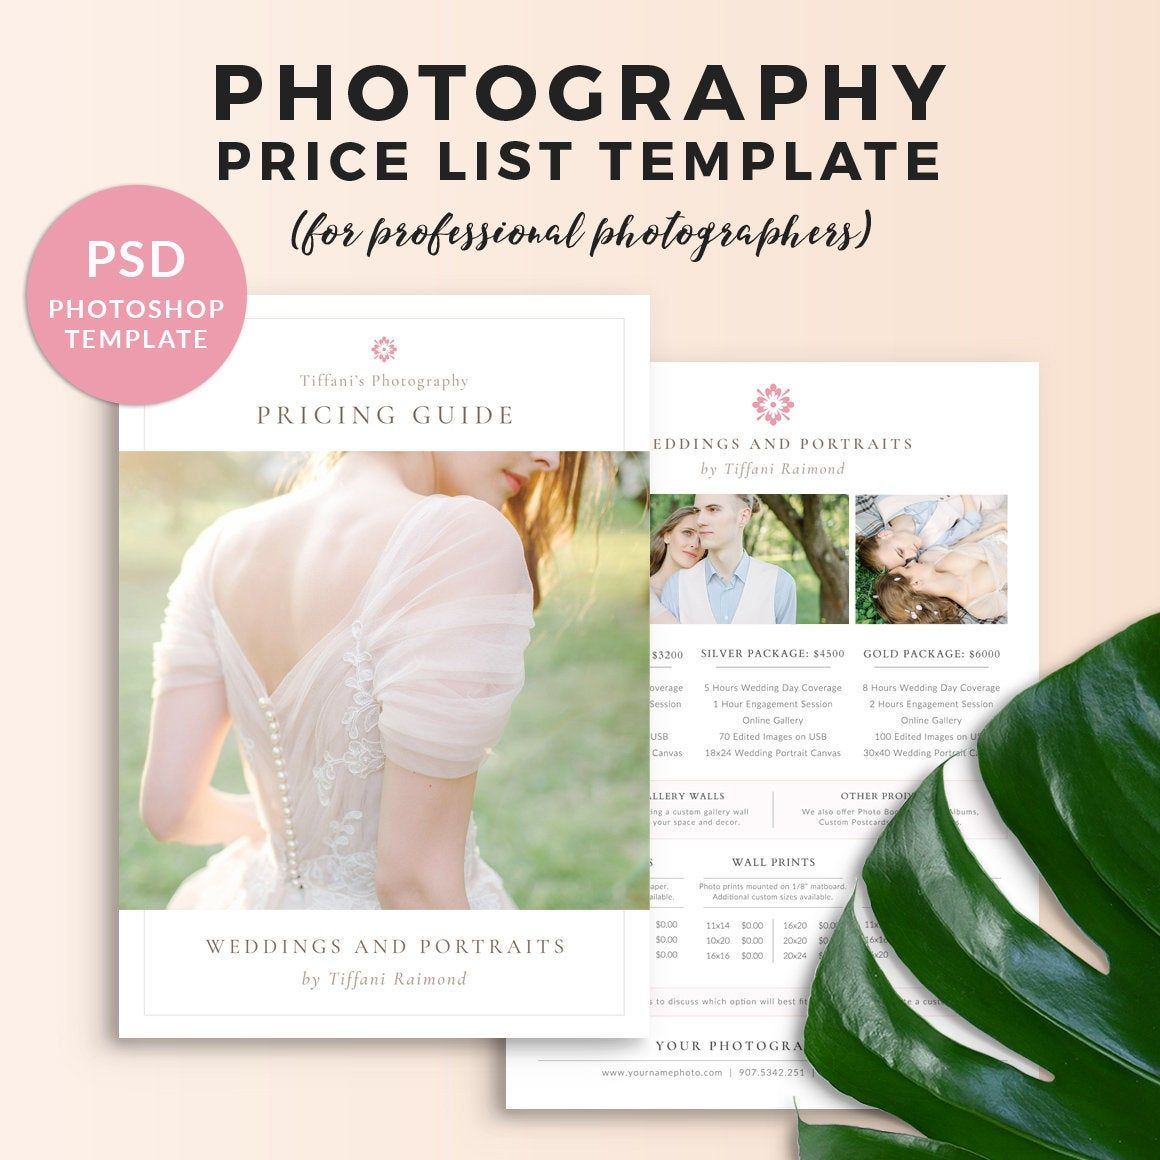 Photography Price List Template Wedding Price Sheet Photographer Pricing Guid Photography Price List Template Wedding Photography Pricing Price List Template How to price addition